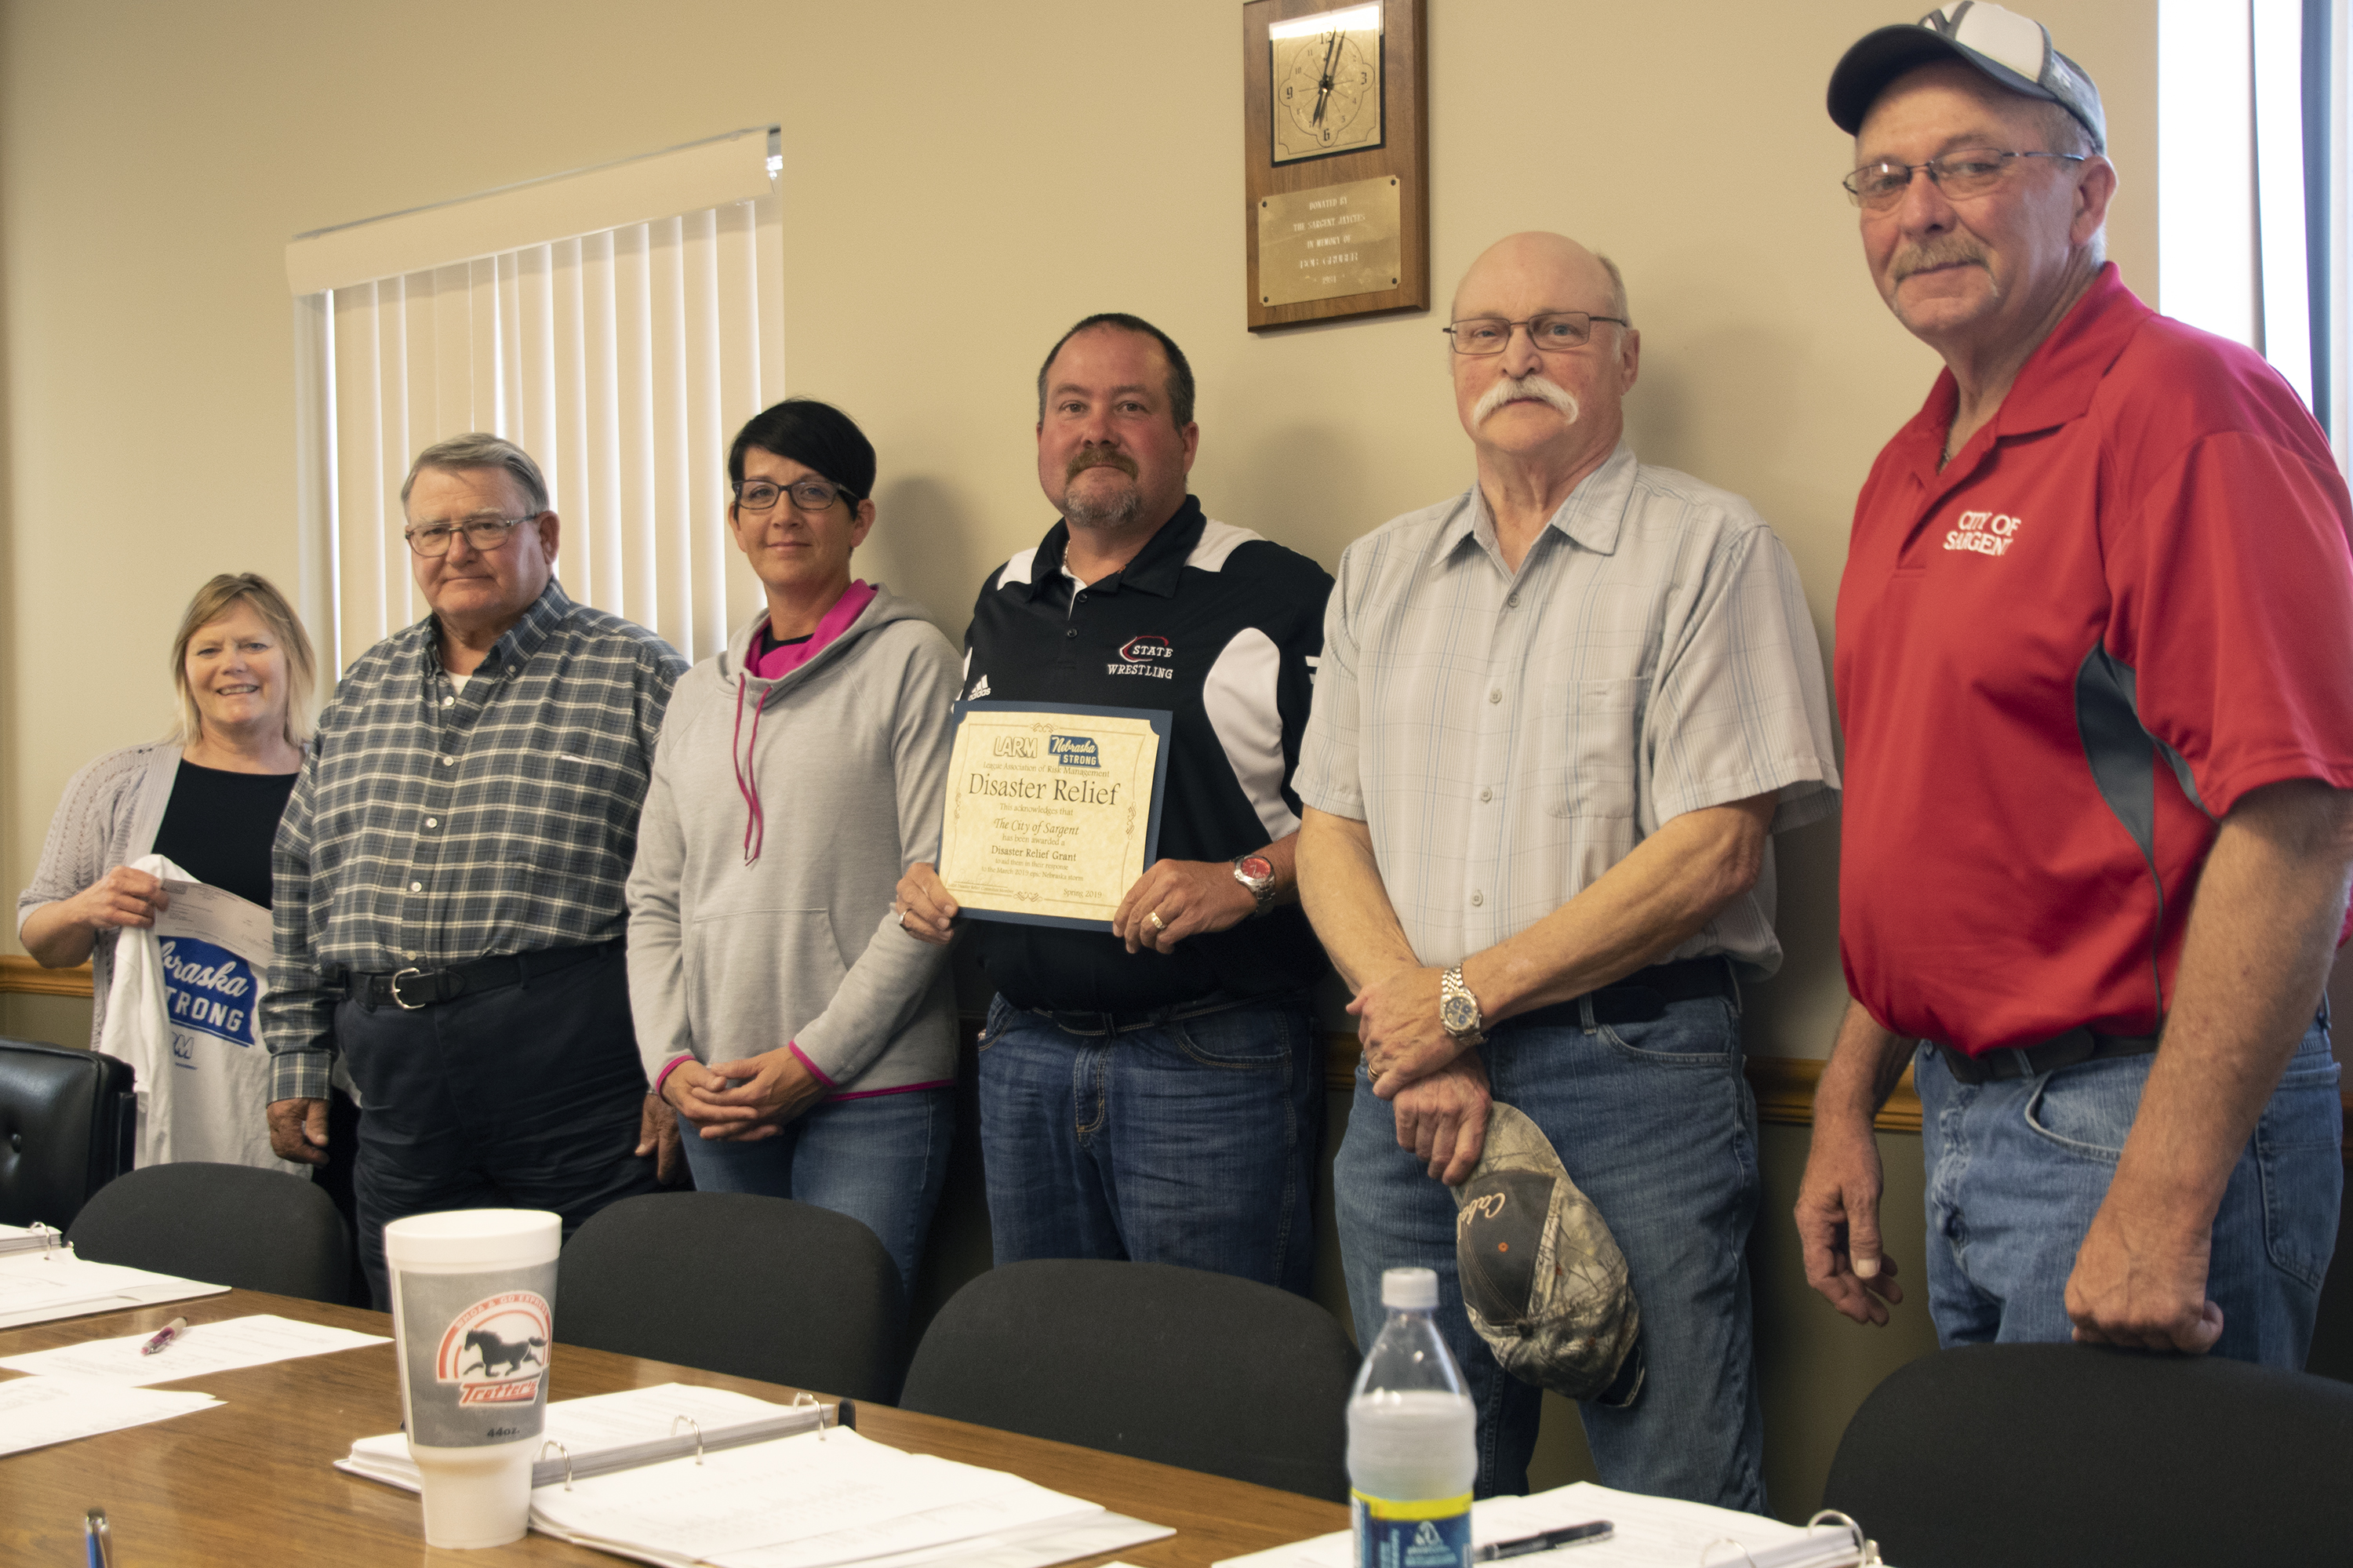 The City of Sargent awarded $500 in Disaster Relief Funds